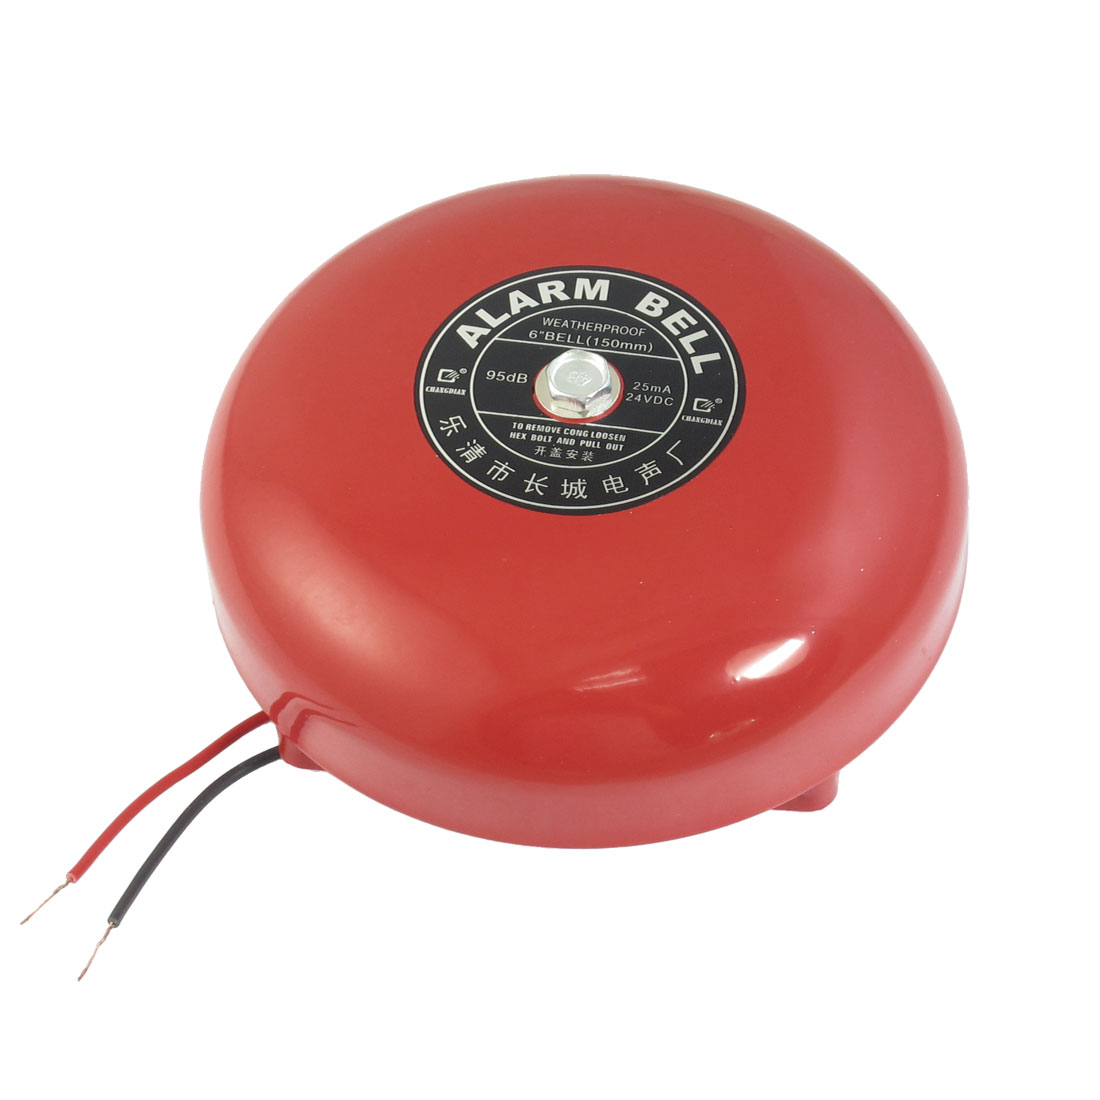 "DC 24V 25mA 95db 150mm 6"" Diameter Metal Electric Round Alarm Bell Red"